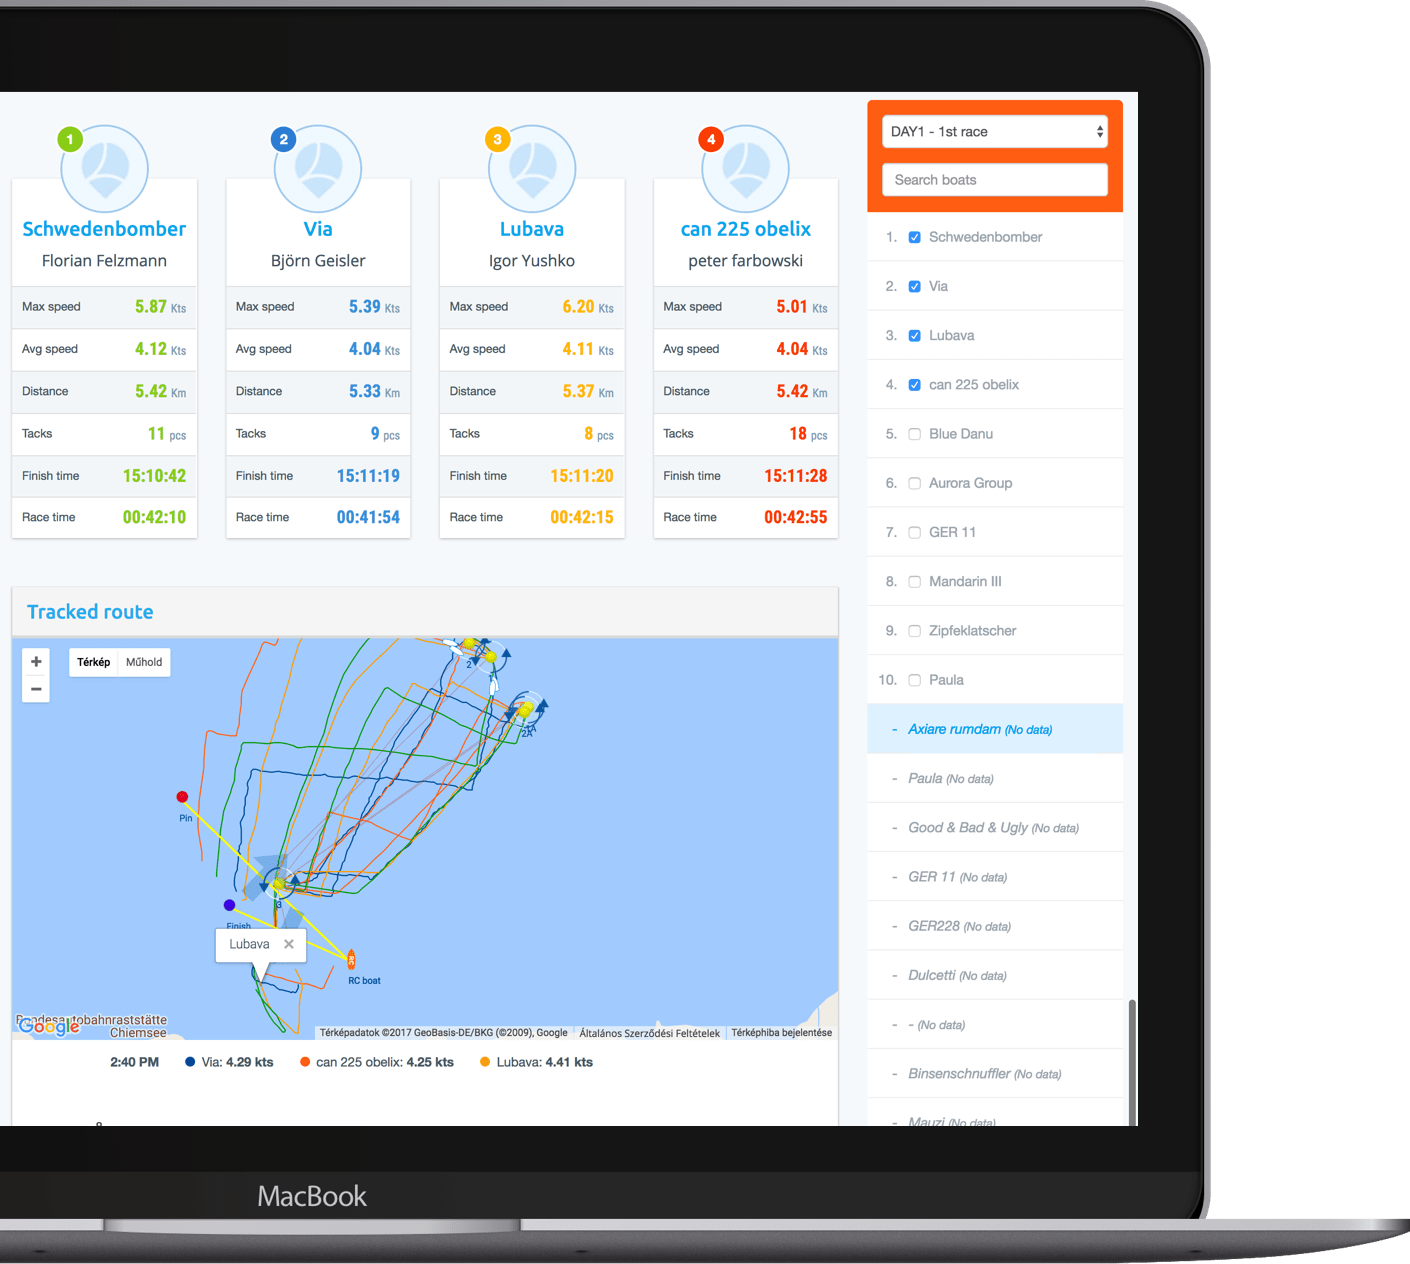 Get detailed performance analytics - Kwindoo, sailing, regatta, track, live, tracking, sail, races, broadcasting